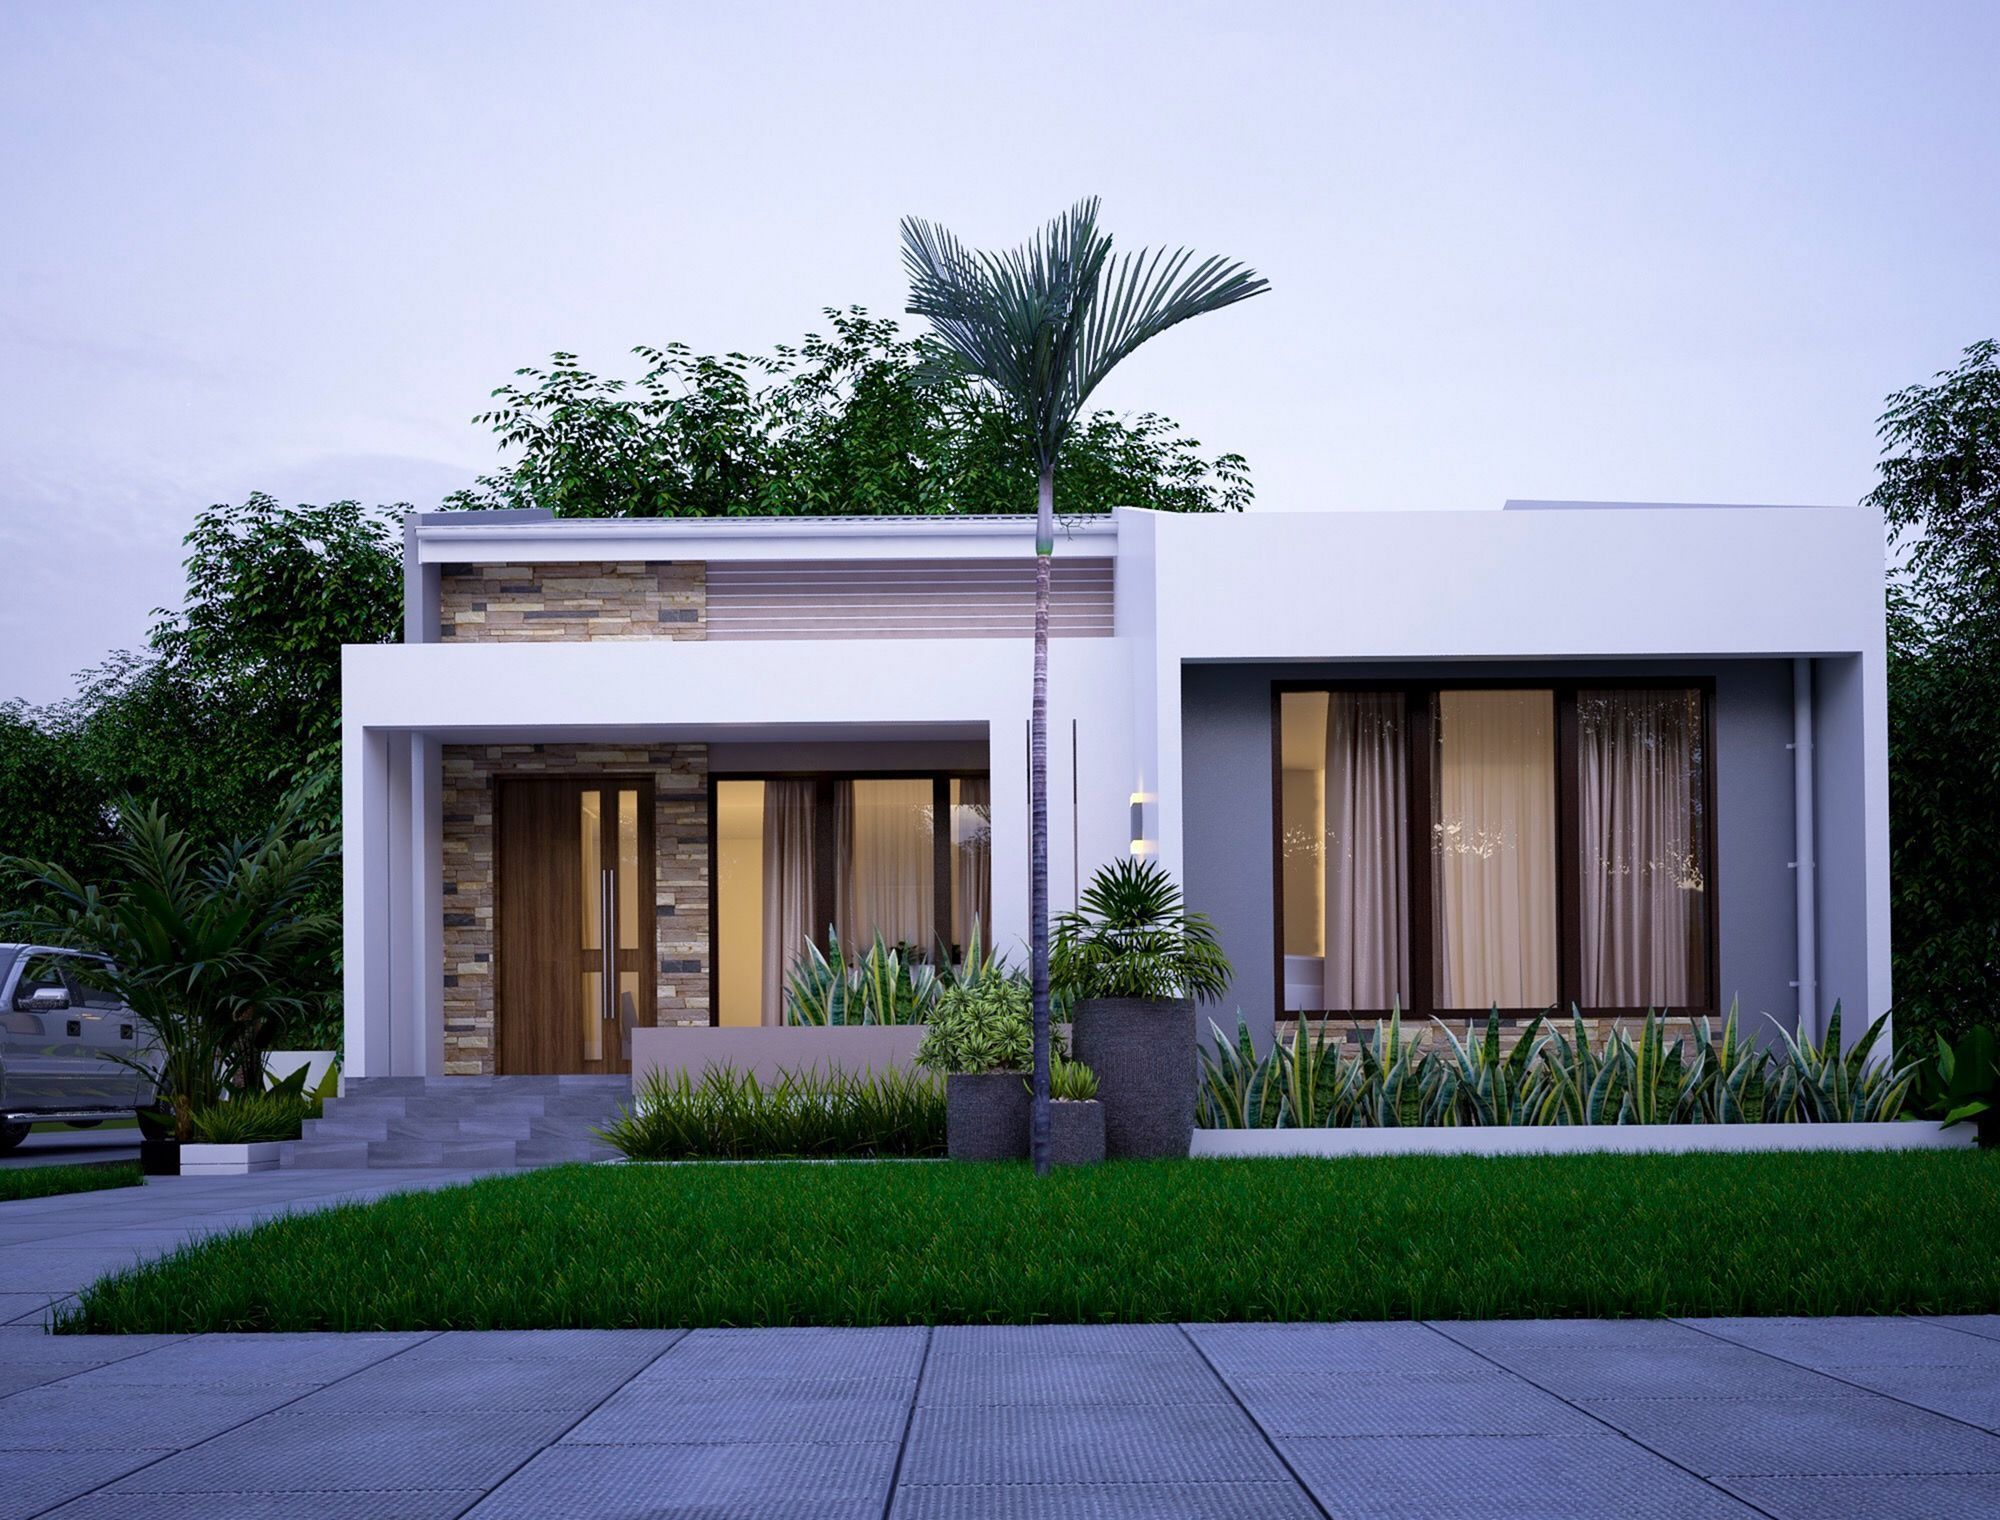 Simple Minimalist Residences Are Increasingly Popular In The Community There Are Many Advanta In 2020 Minimalist House Design Bungalow House Design Small House Design